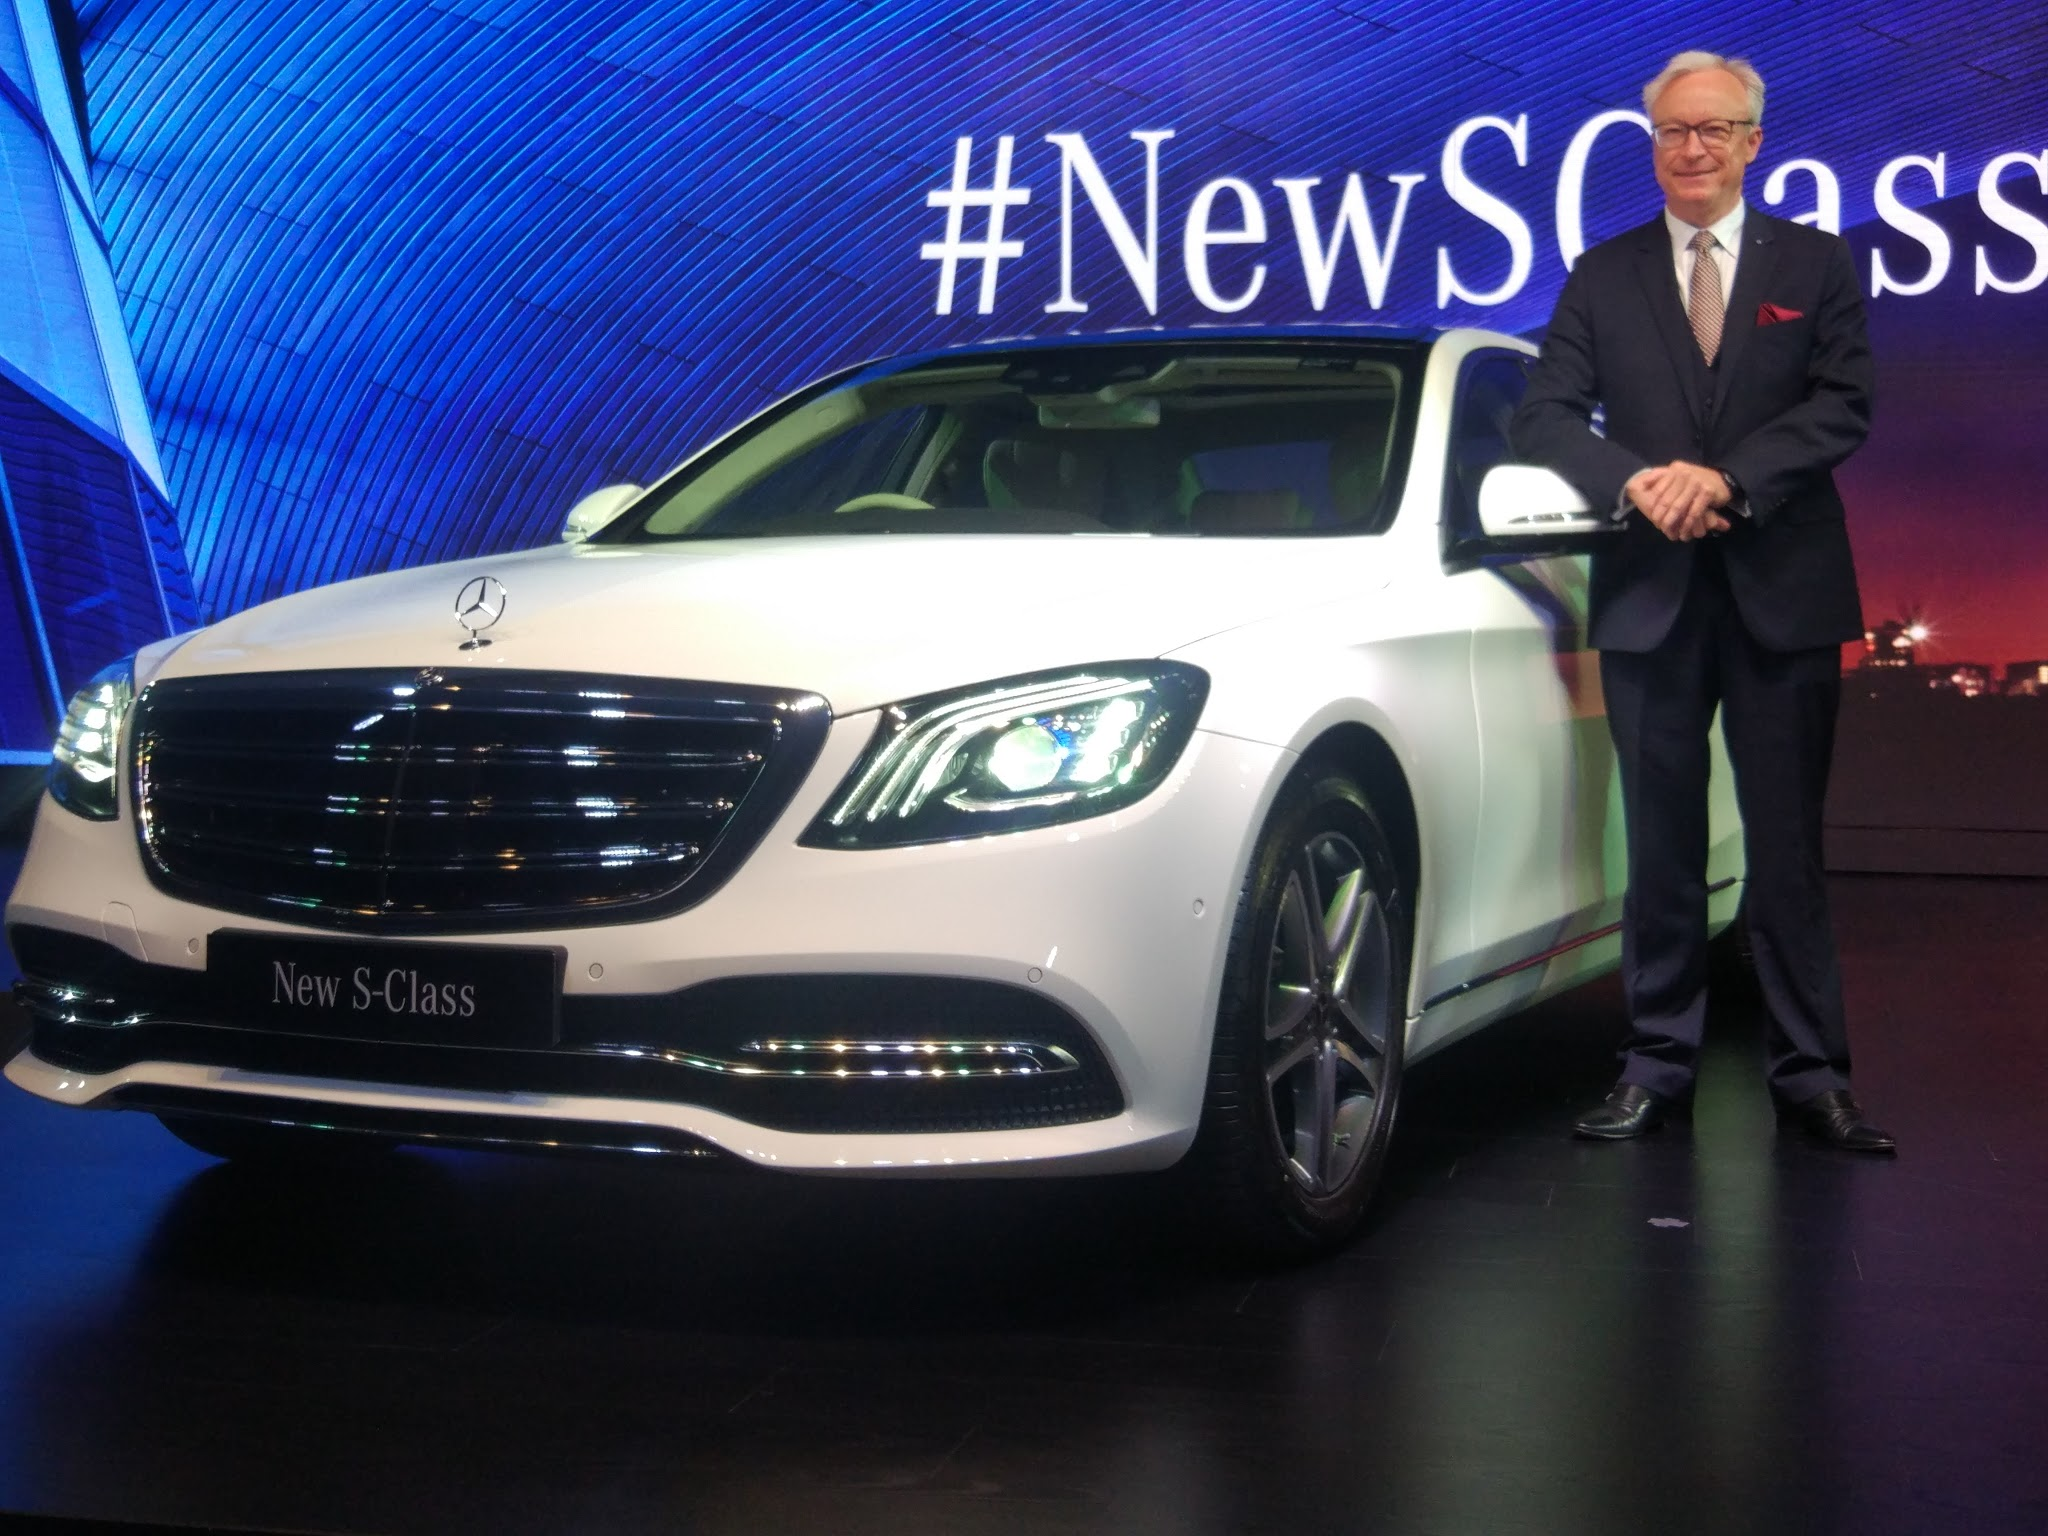 2018 Mercedes-Benz S-Class Facelift Launched; Price in India Starts From INR 1.33 Crore